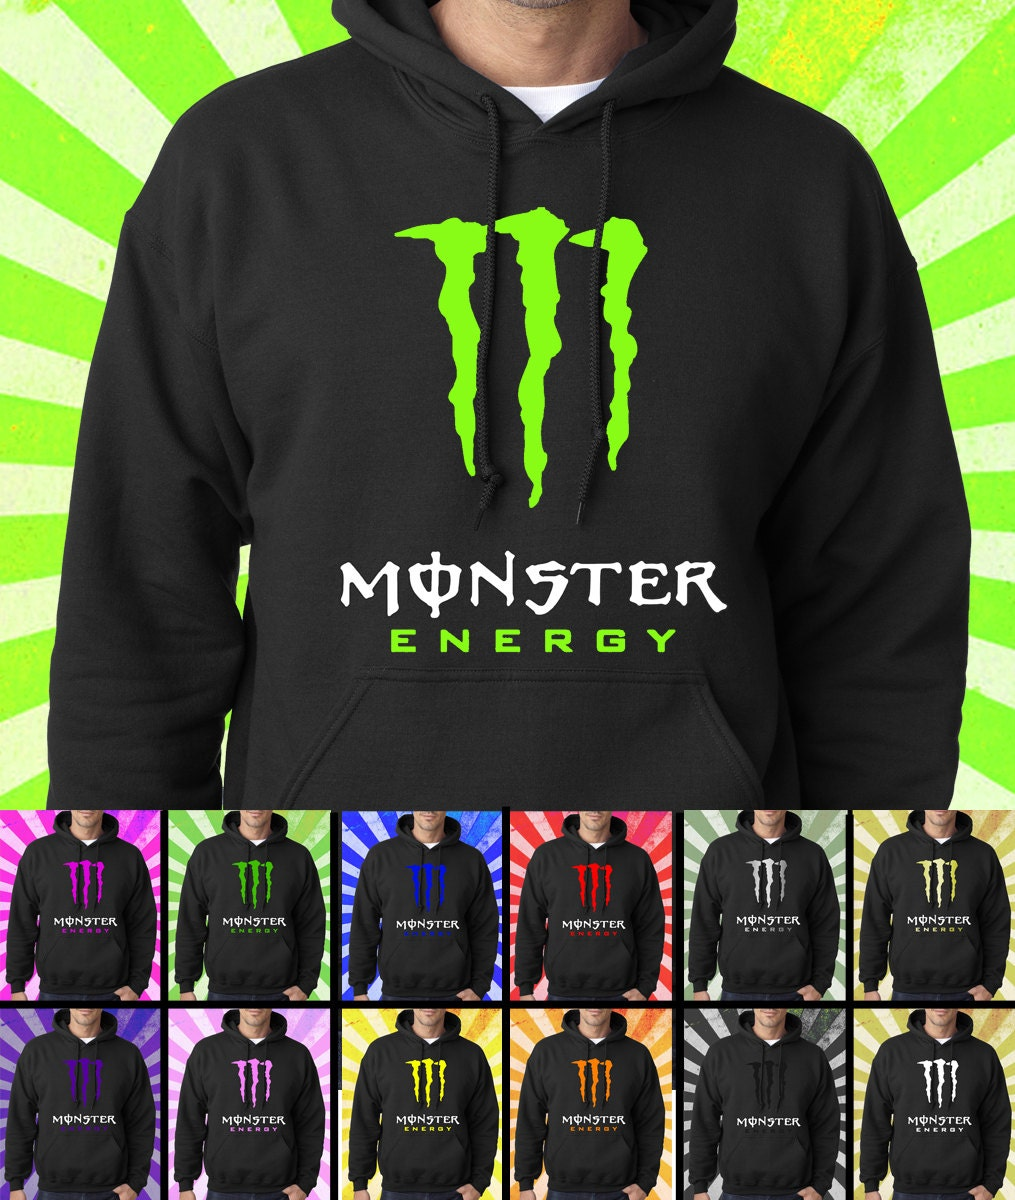 new monster energy black hoodie pullover by hoodiesandtees. Black Bedroom Furniture Sets. Home Design Ideas